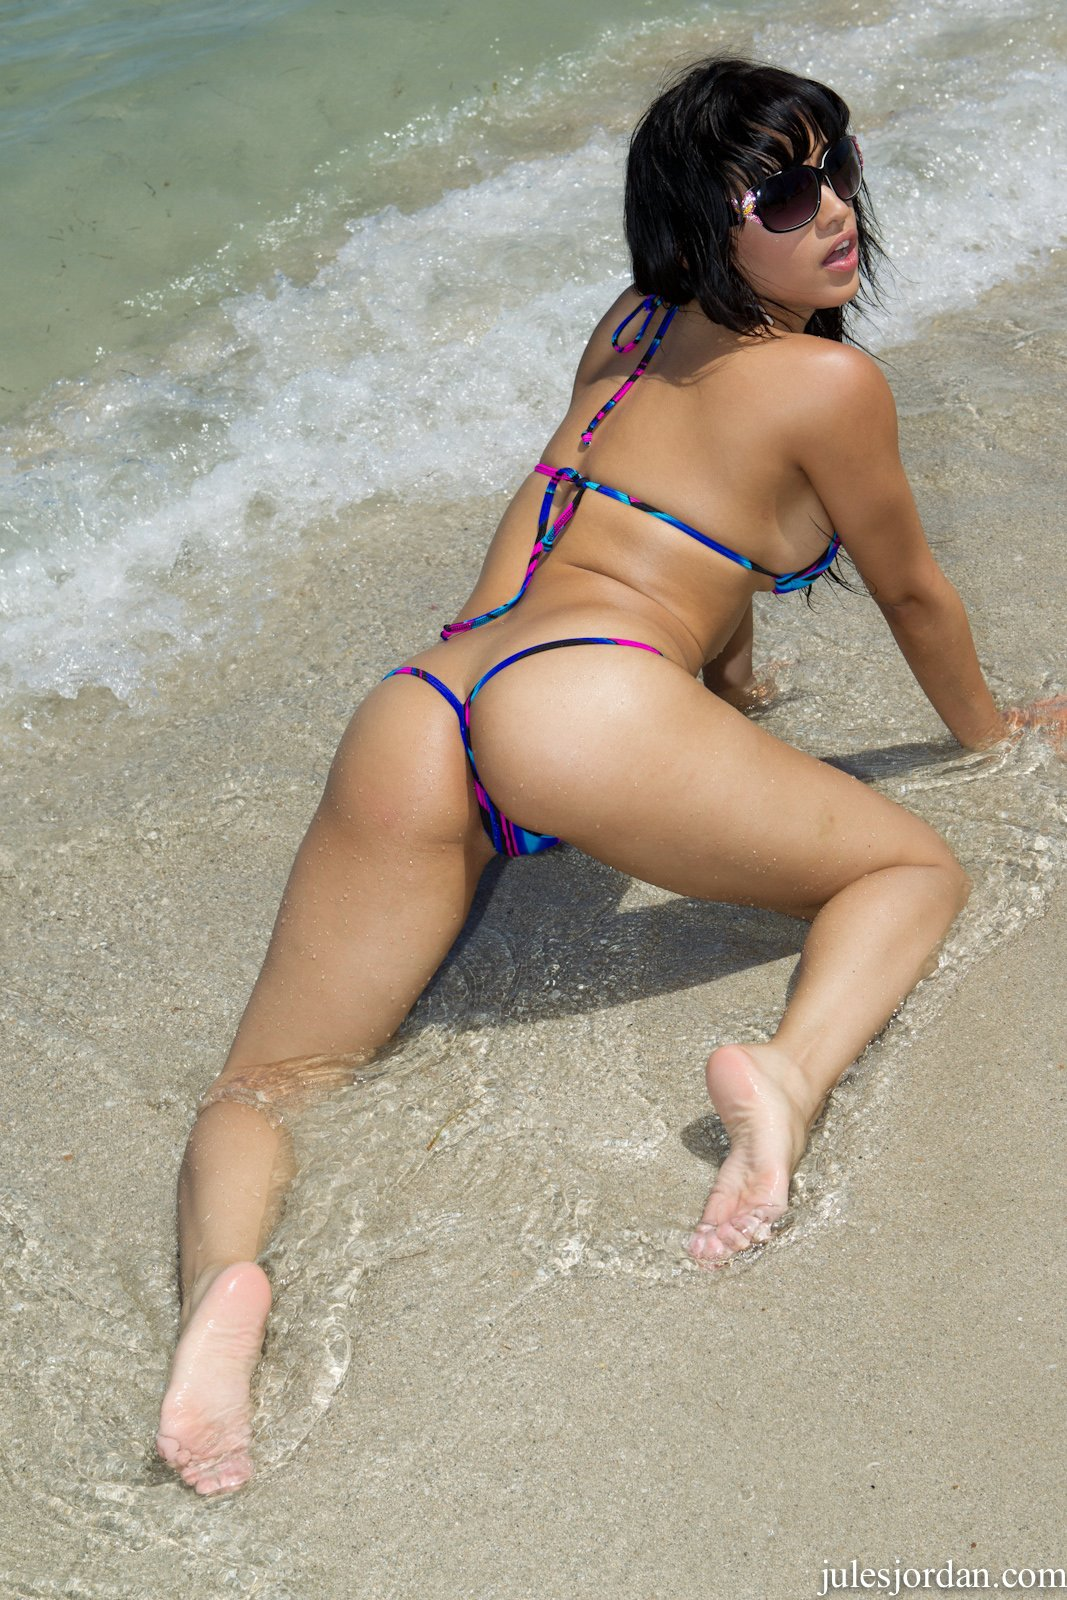 Bikini Girl Abella Anderson Poses On The Beach - My -7102